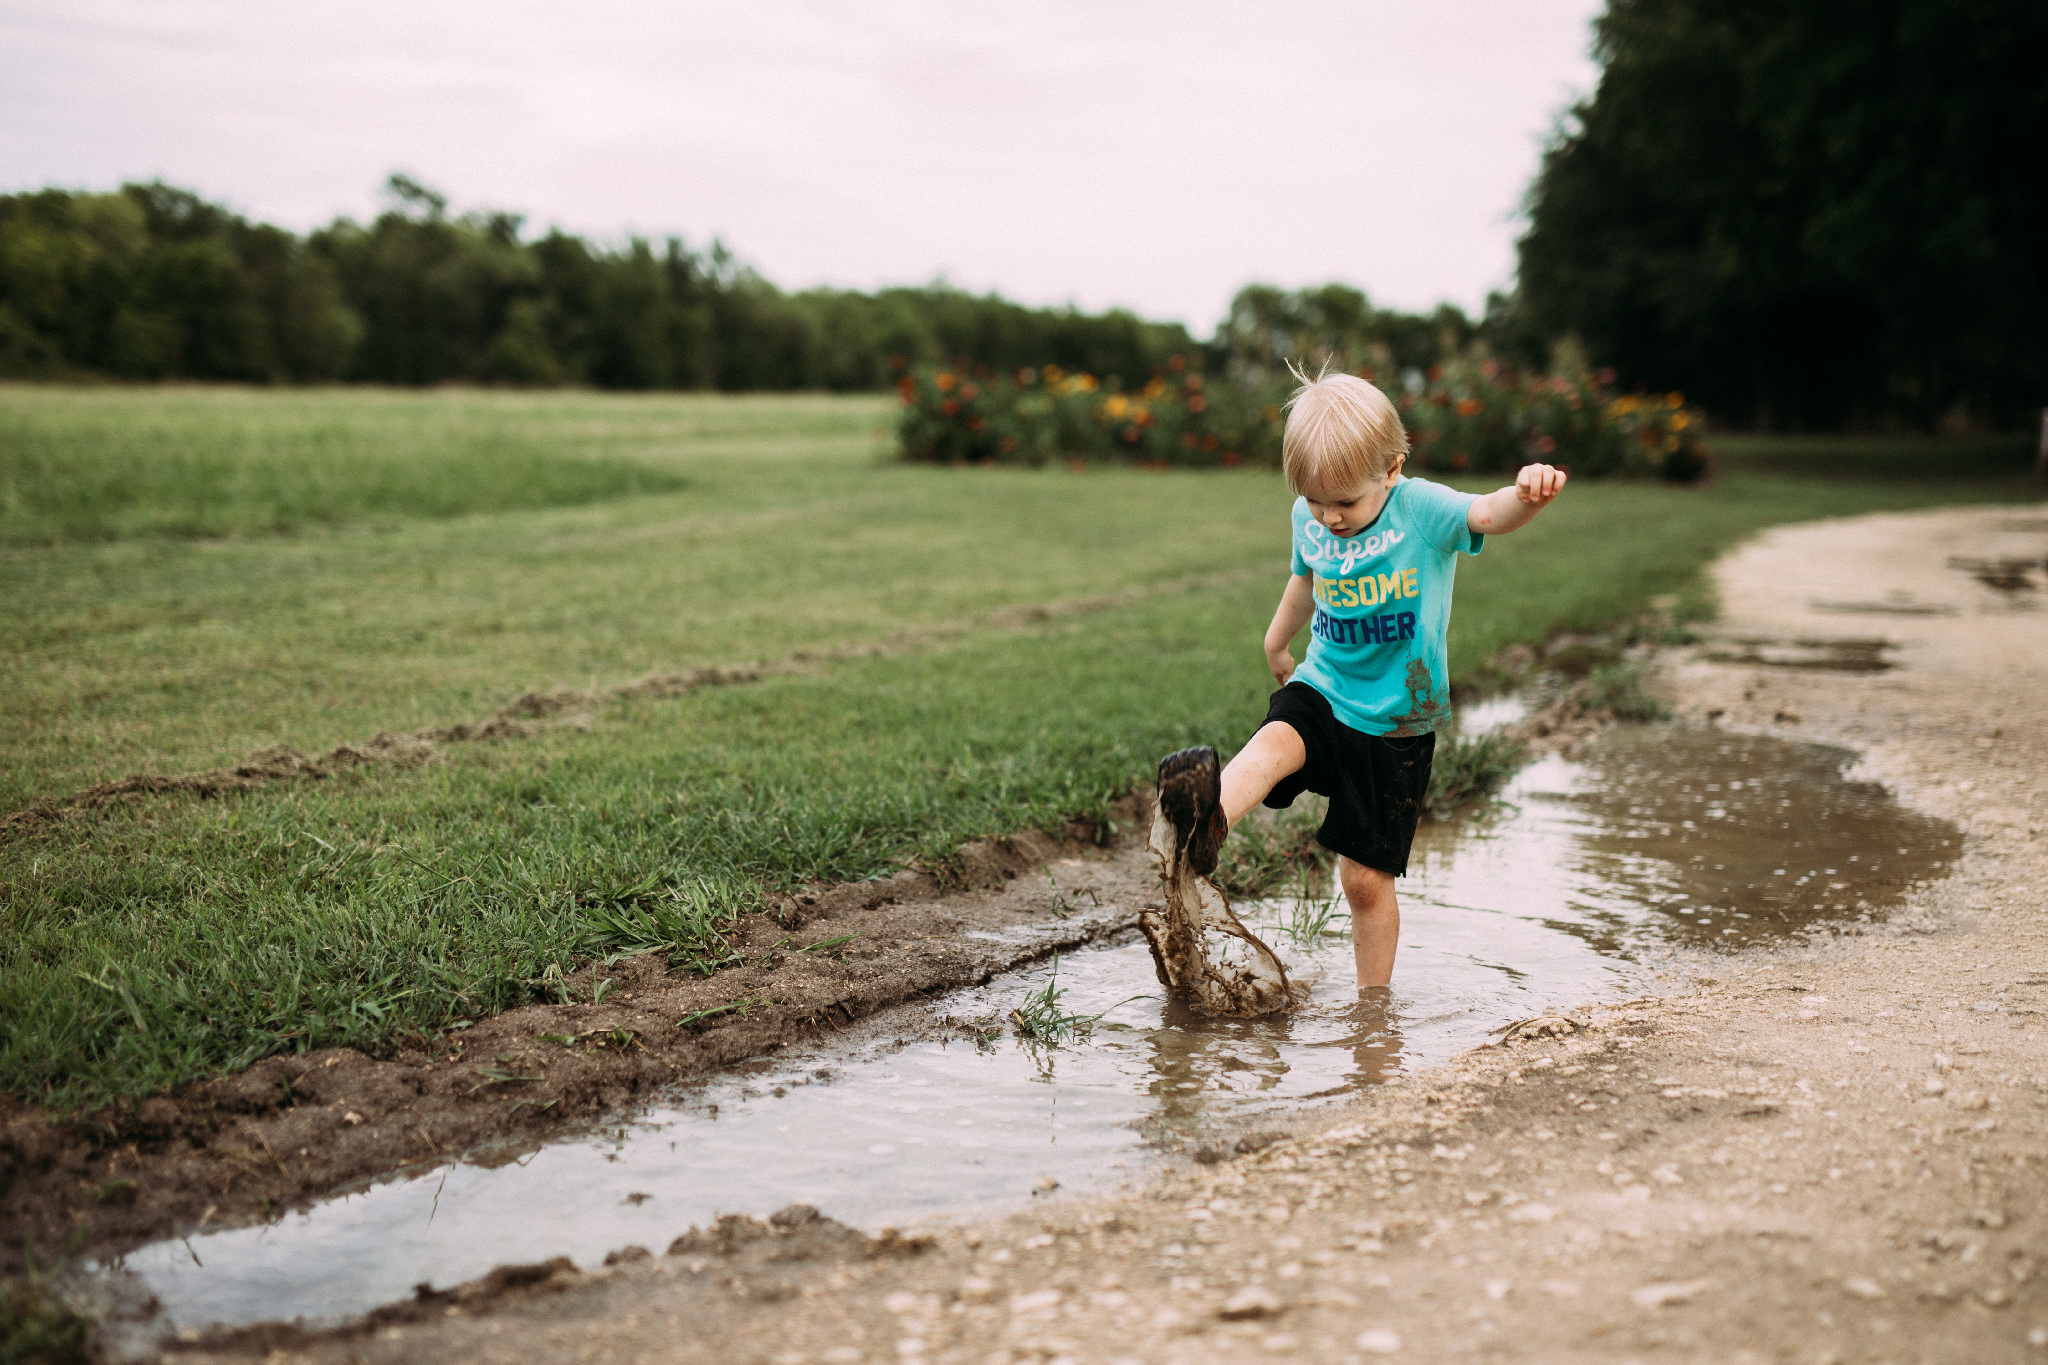 There is always time to play in muddy puddles | Rural Life Photography | Family Photojournalism